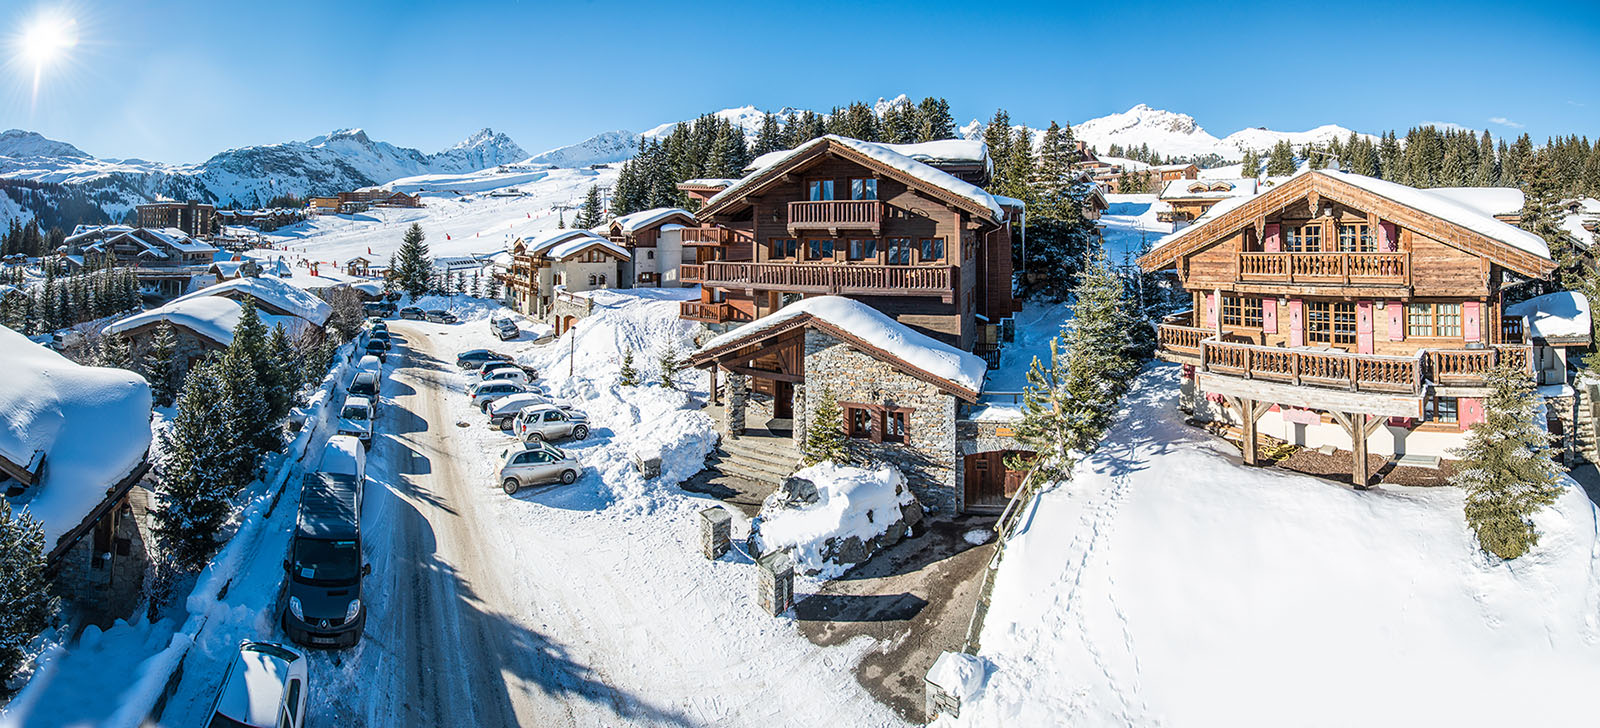 Courchevel, ski resort